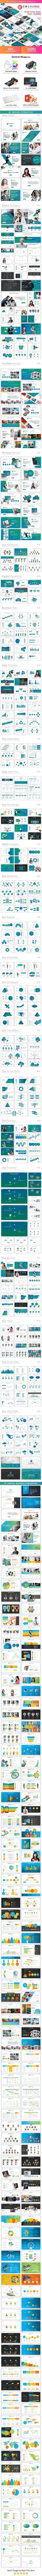 2 in 1 Business Marketing Bundle Powerpoint - Business PowerPoint Templates